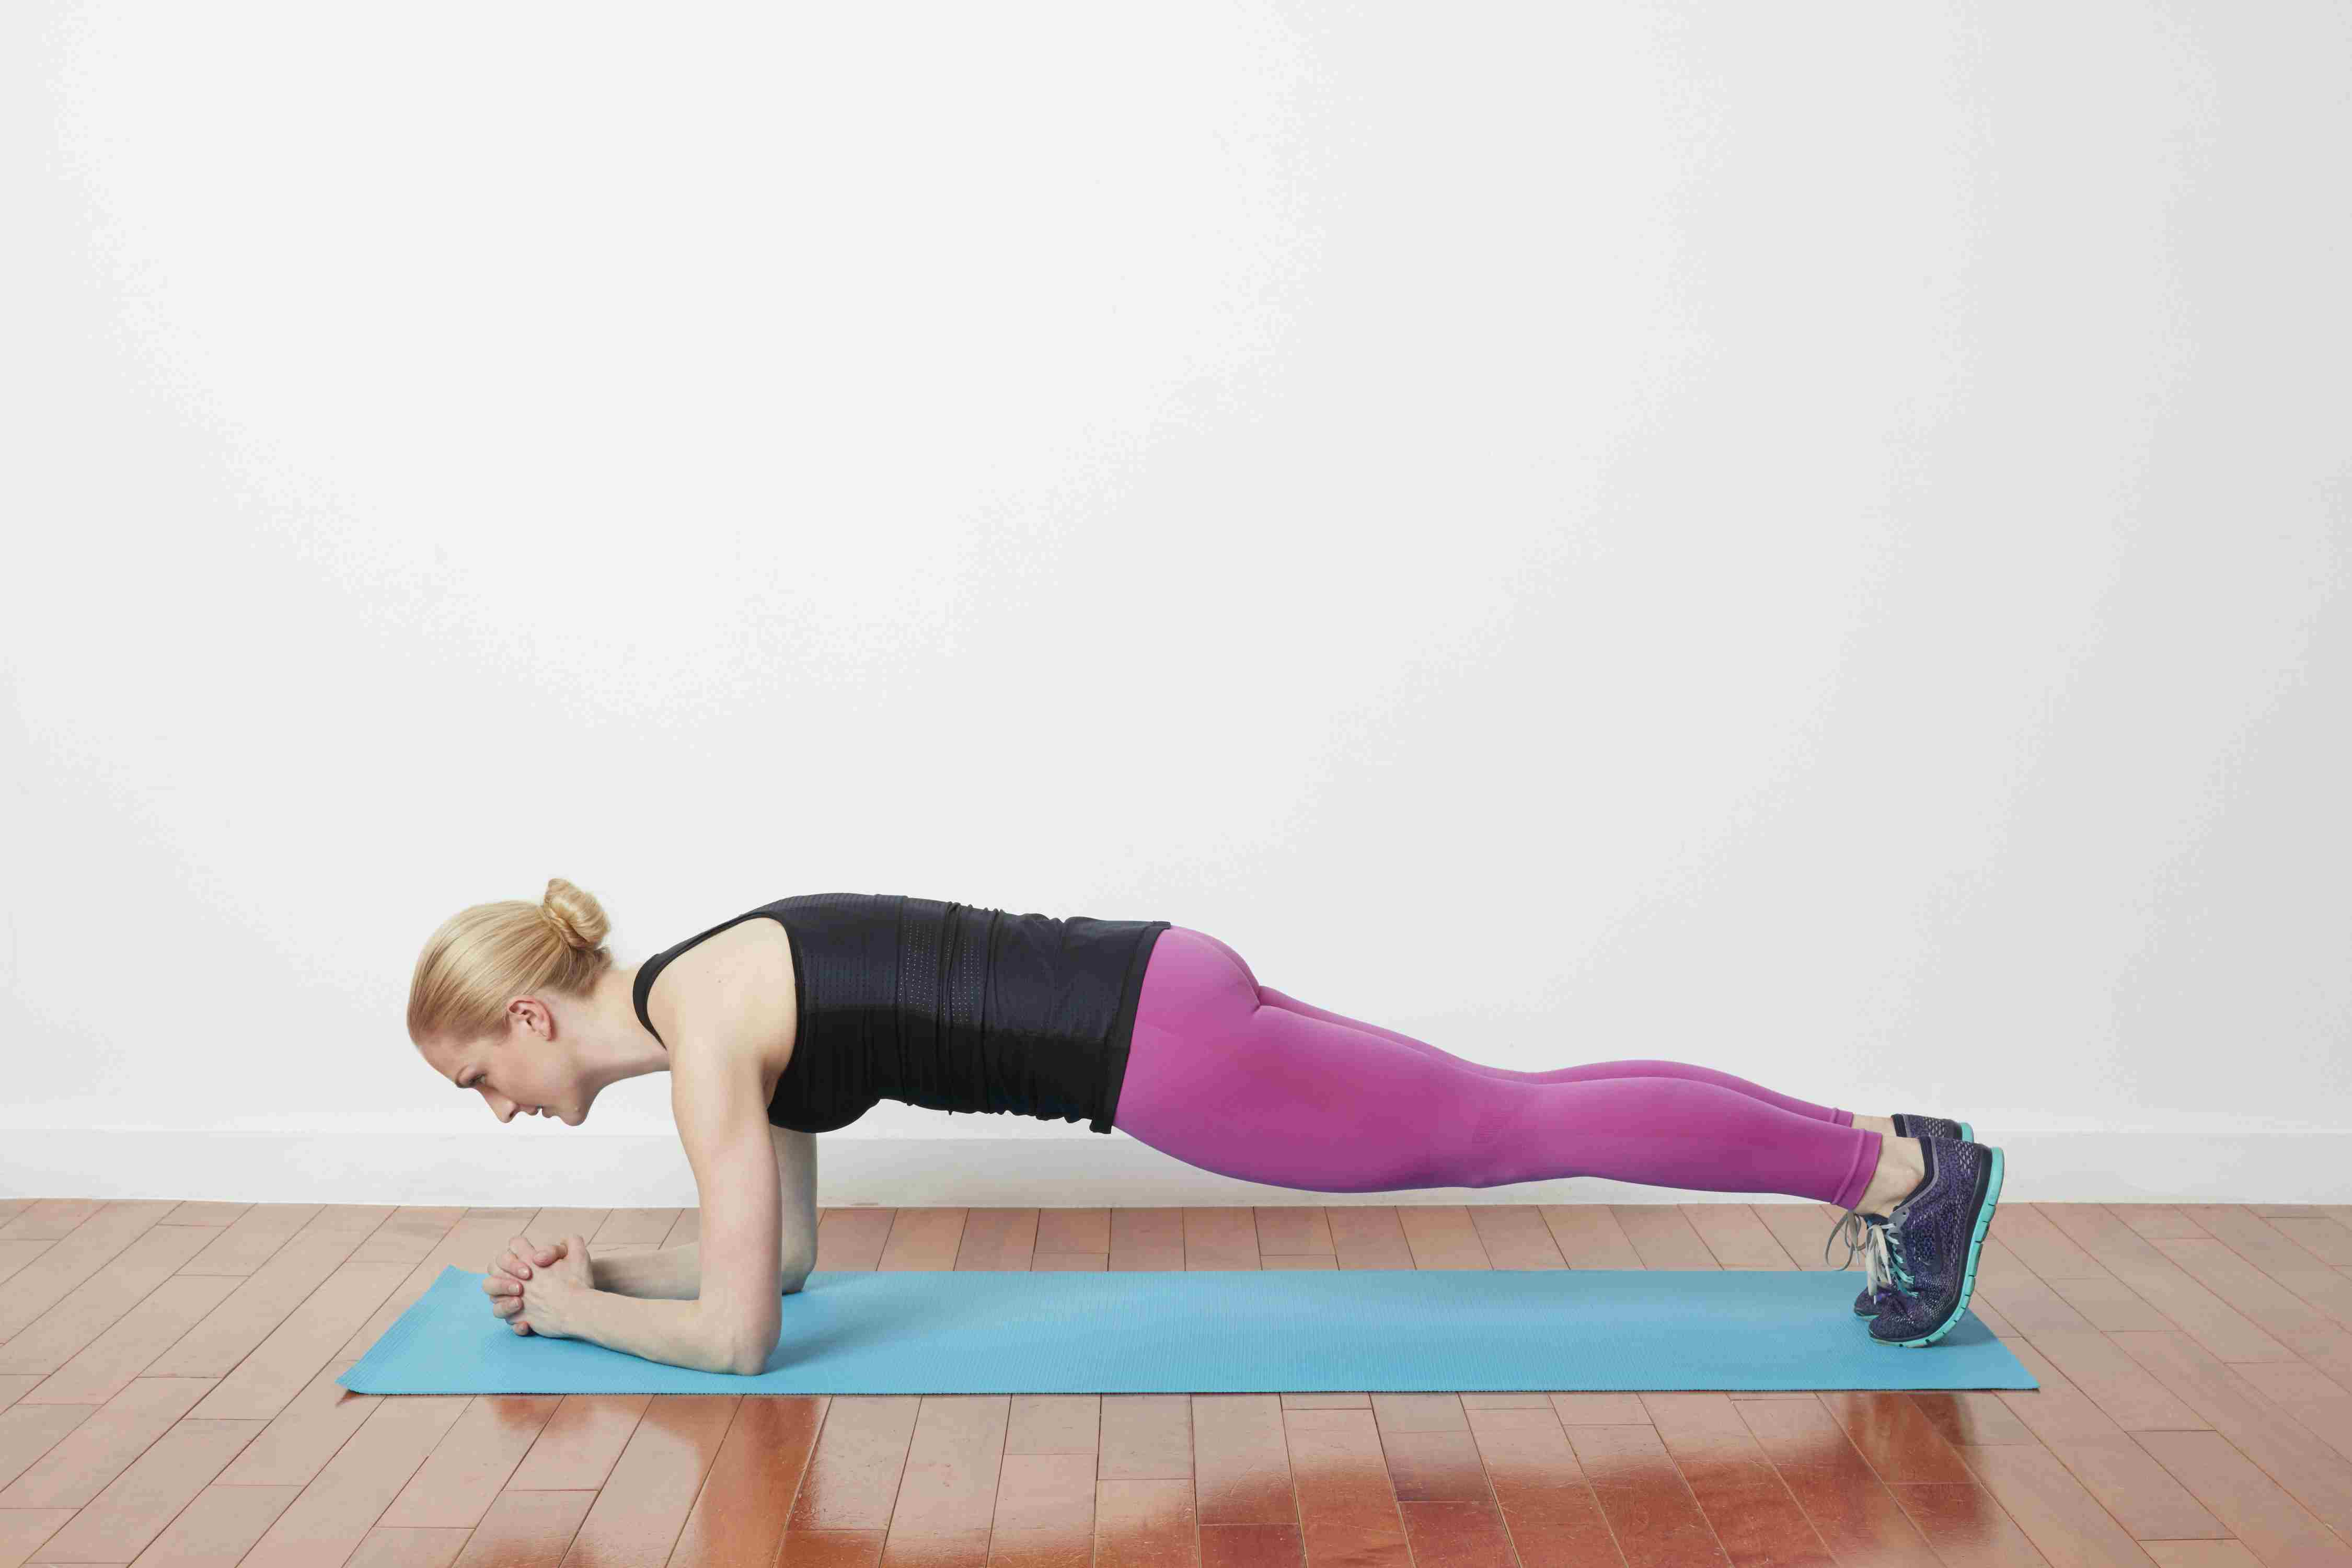 One Hour Cardio And Strength Training Workout Circuit Arms Legs Abs Plank